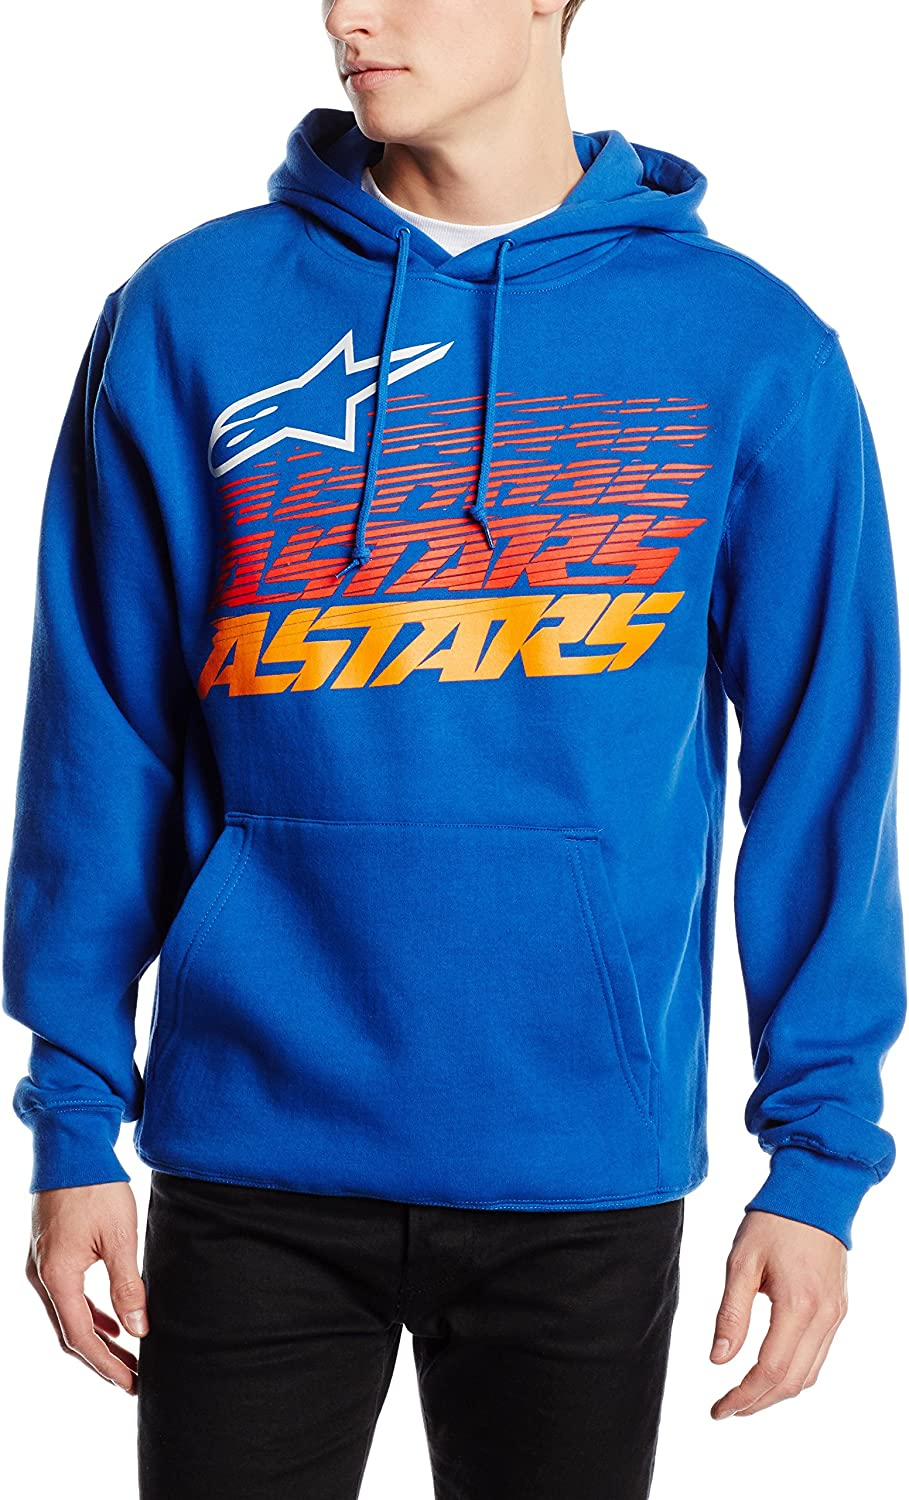 Alpinestars Herren Sweats fleeces Hashed Pull